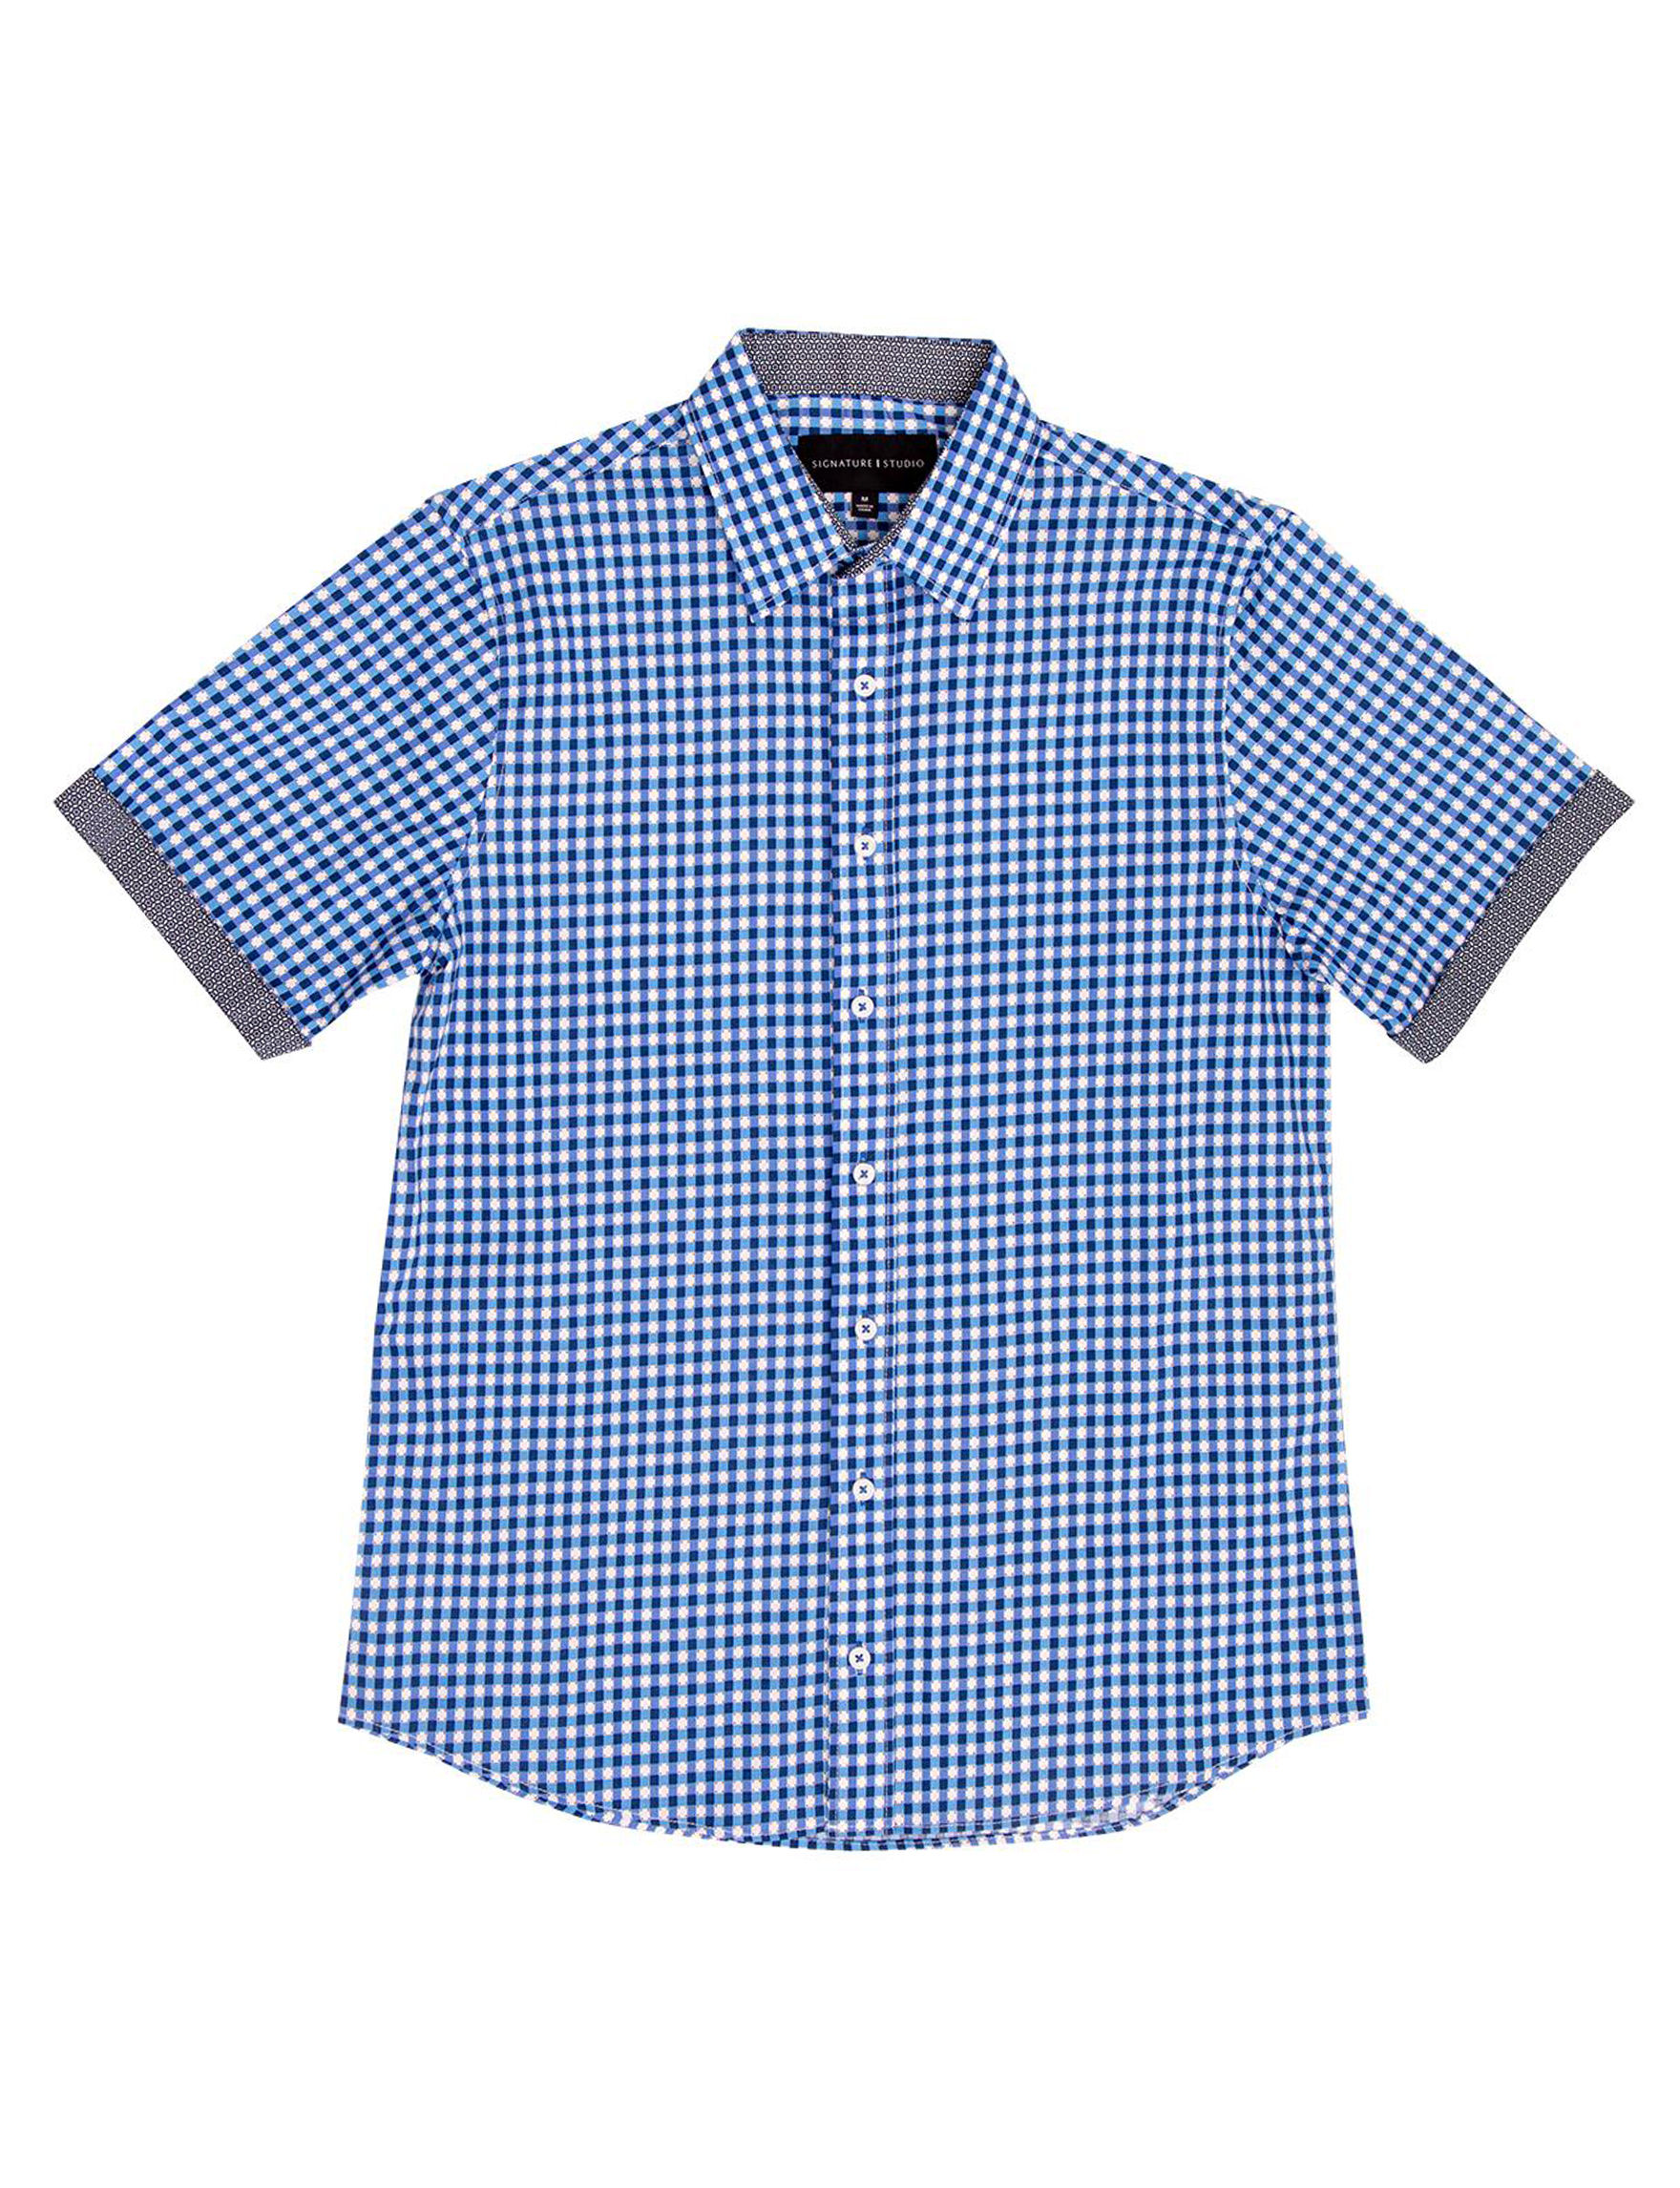 Signature Studio Blue / Navy Casual Button Down Shirts